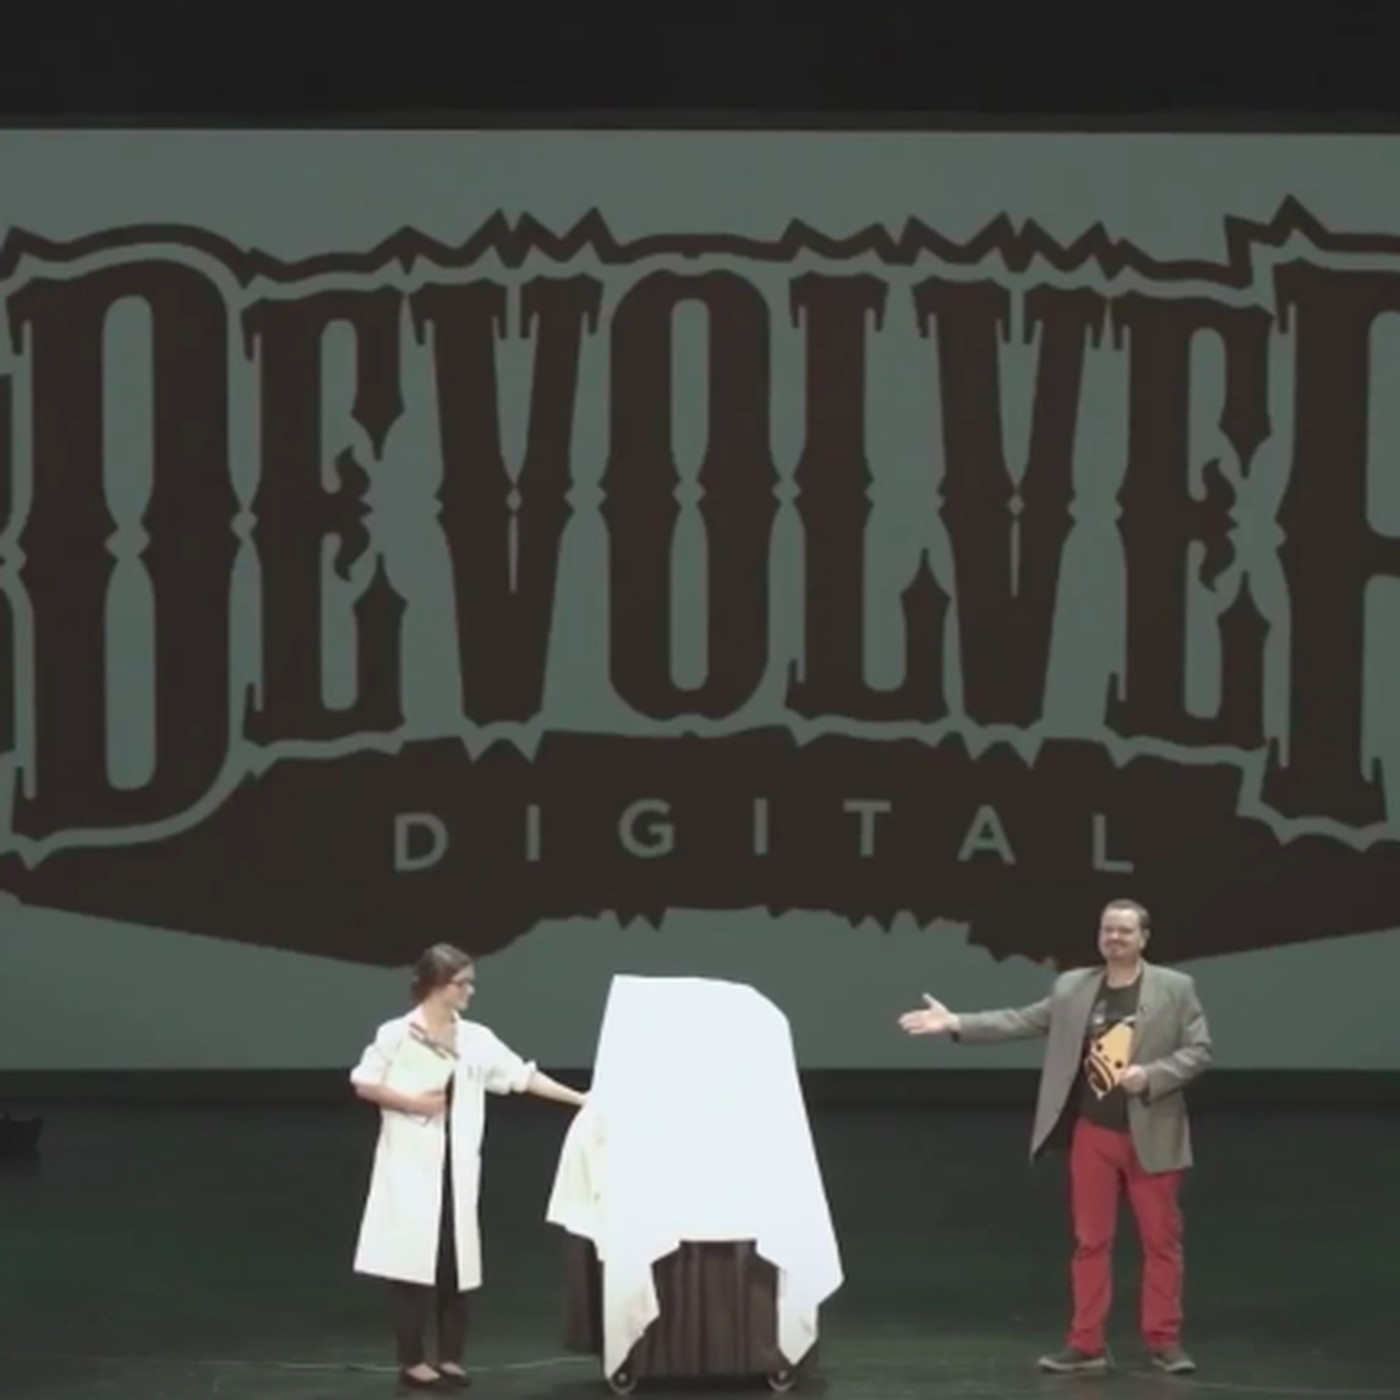 Devolver Digital's press conference was the best part of E3 that